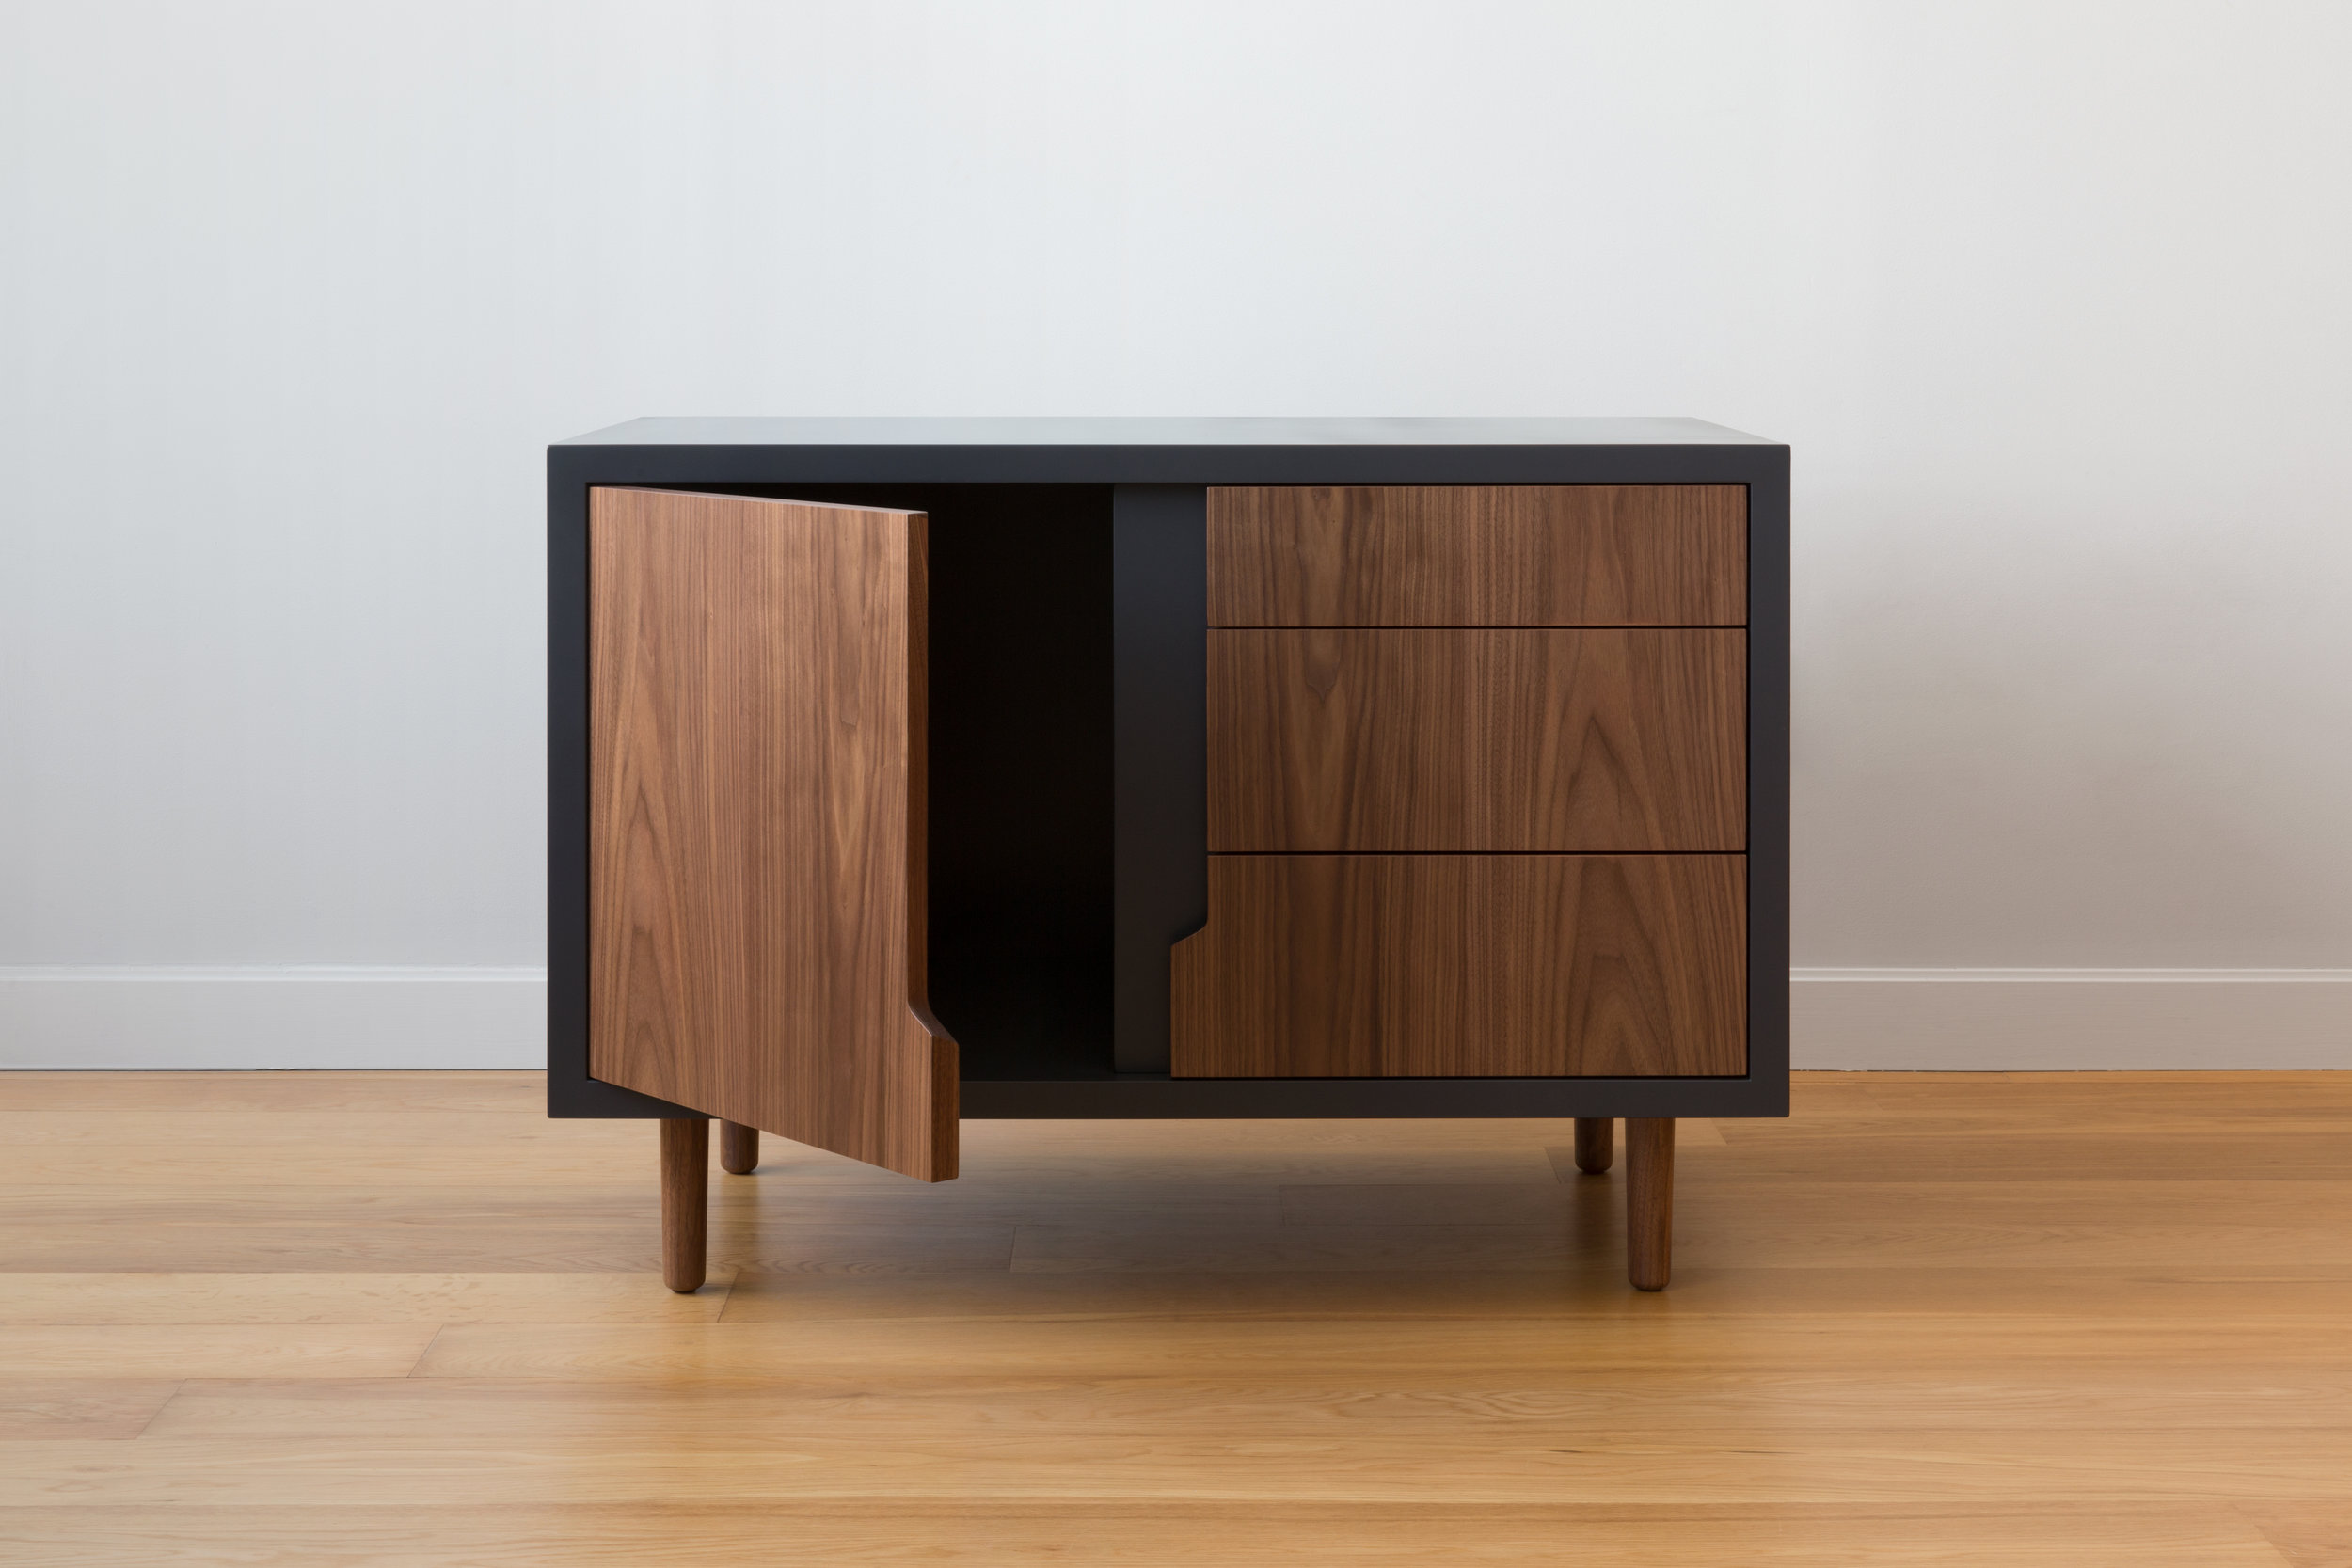 Halsey Sans Cabinet in Midnight Oil Lacquer and Walnut by Piet Houtenbos